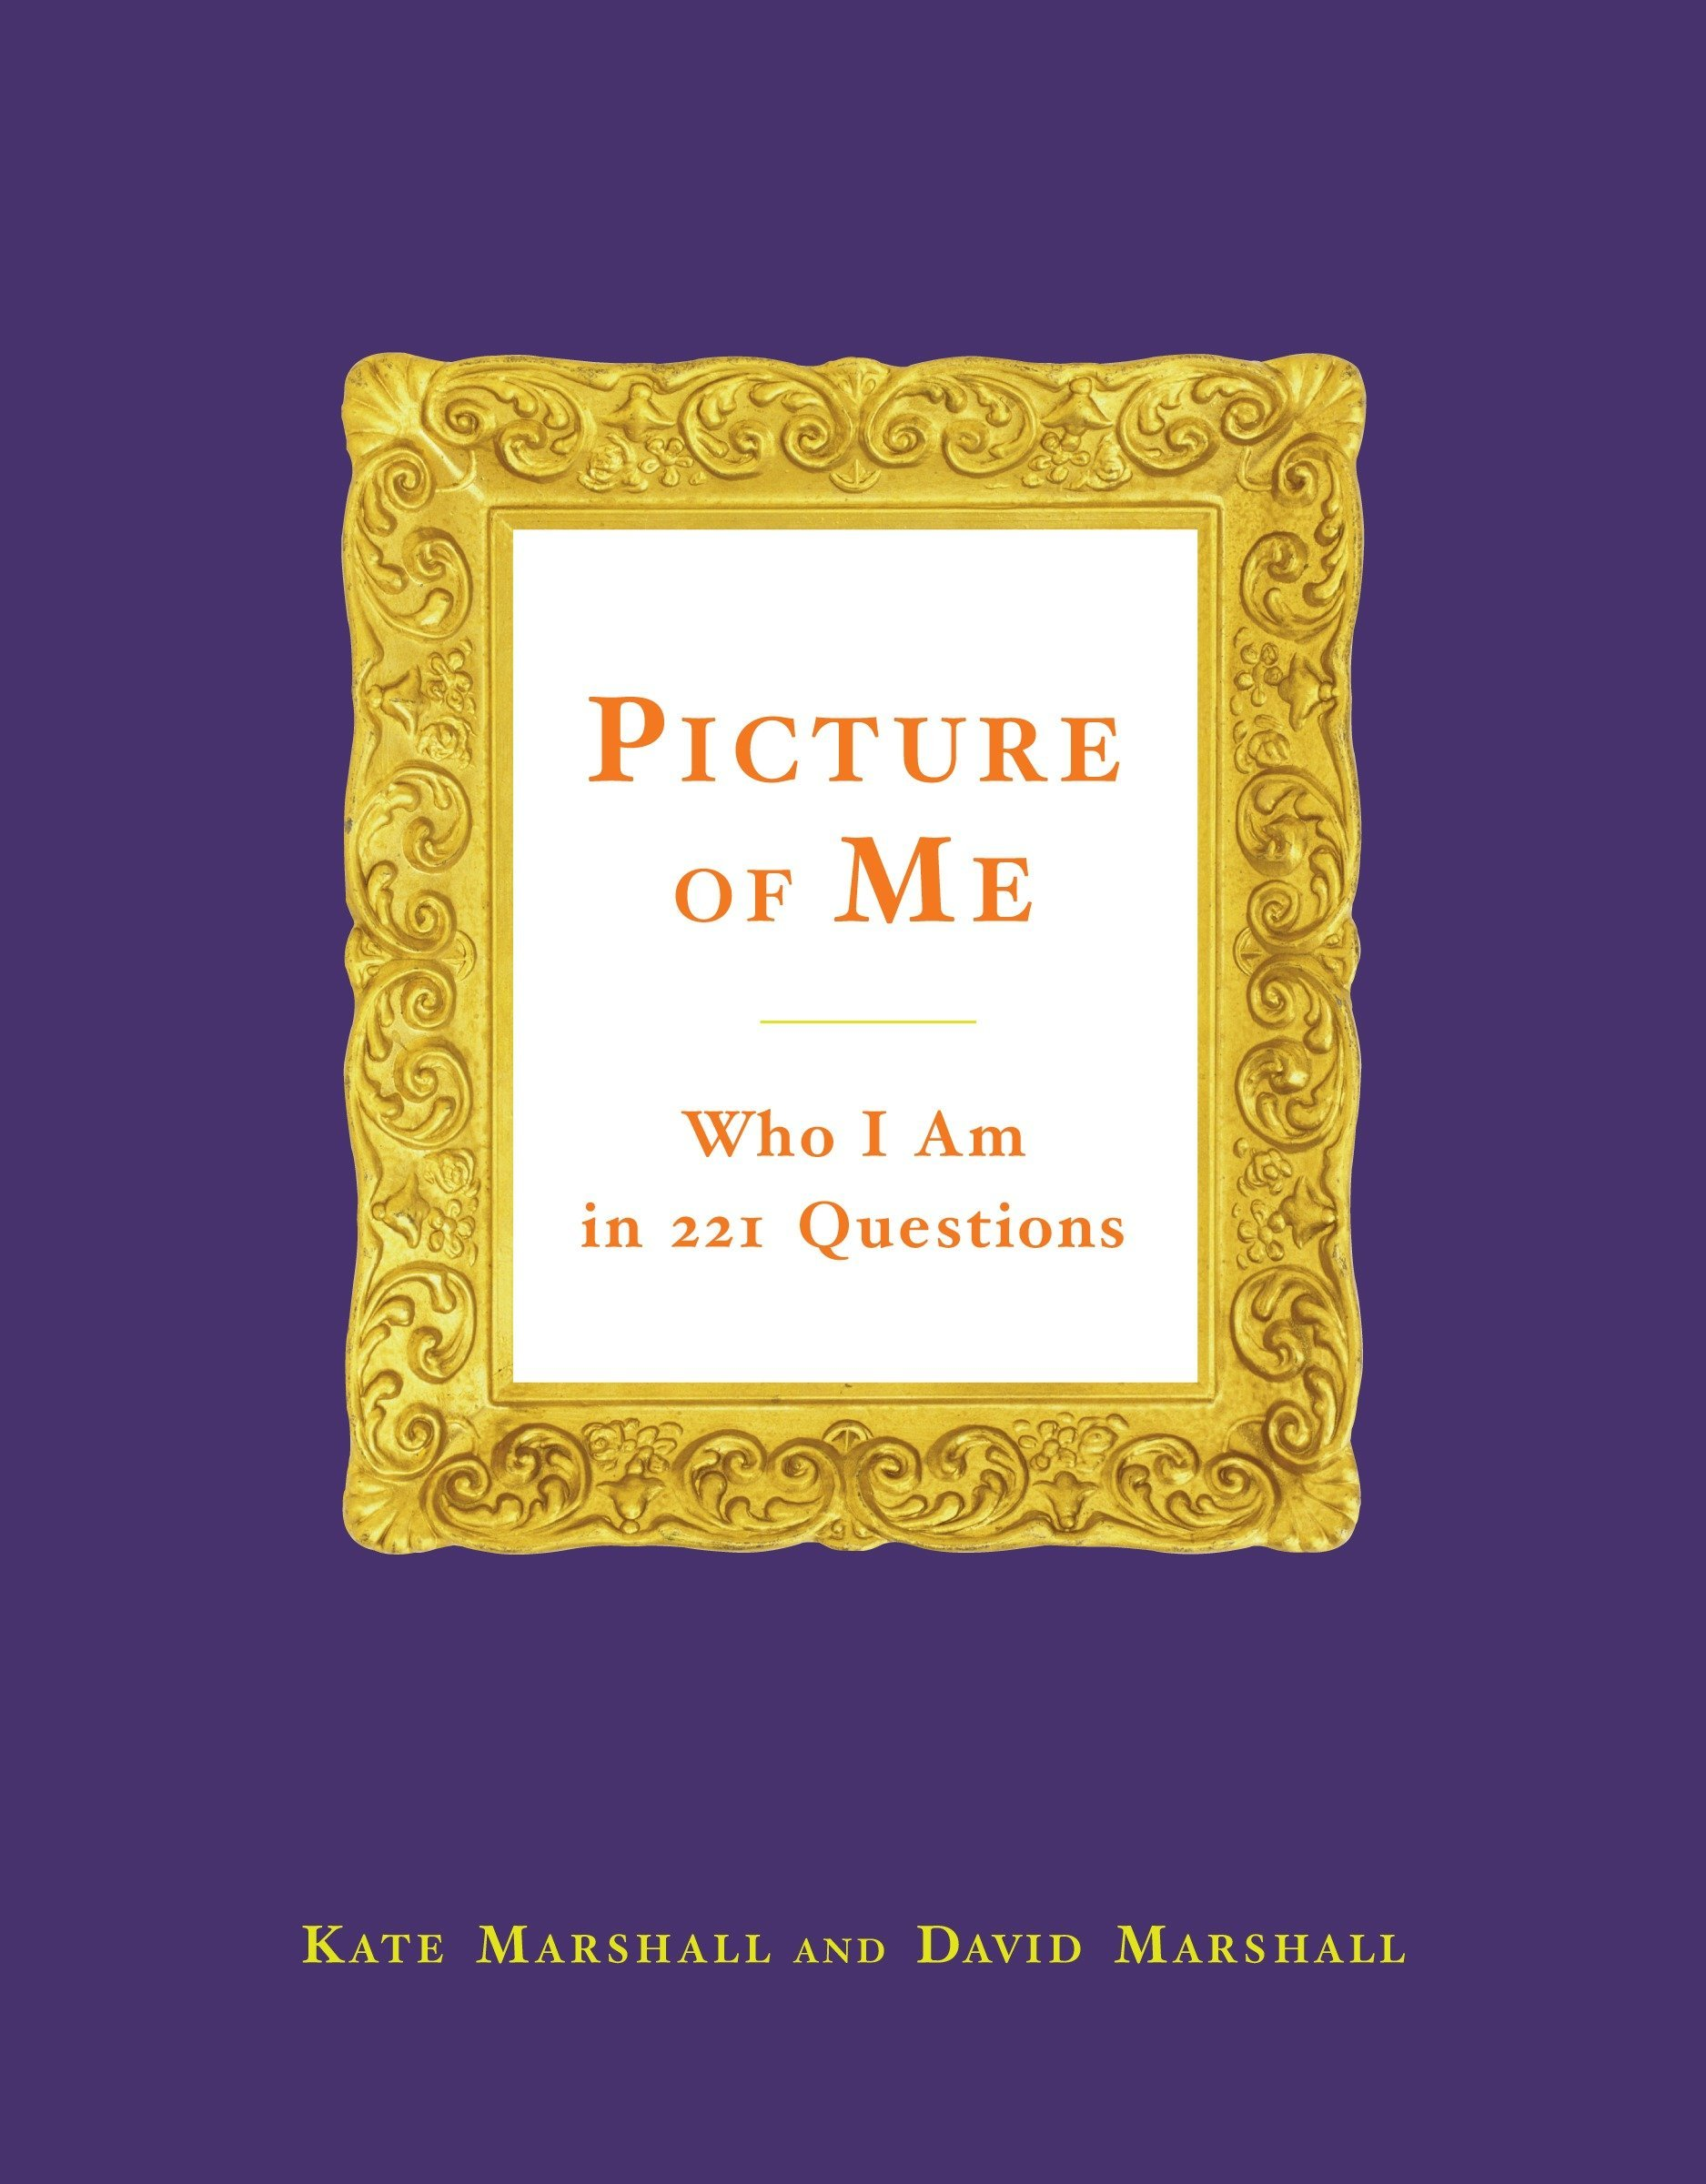 Amazon com: Picture of Me: Who I Am in 221 Questions